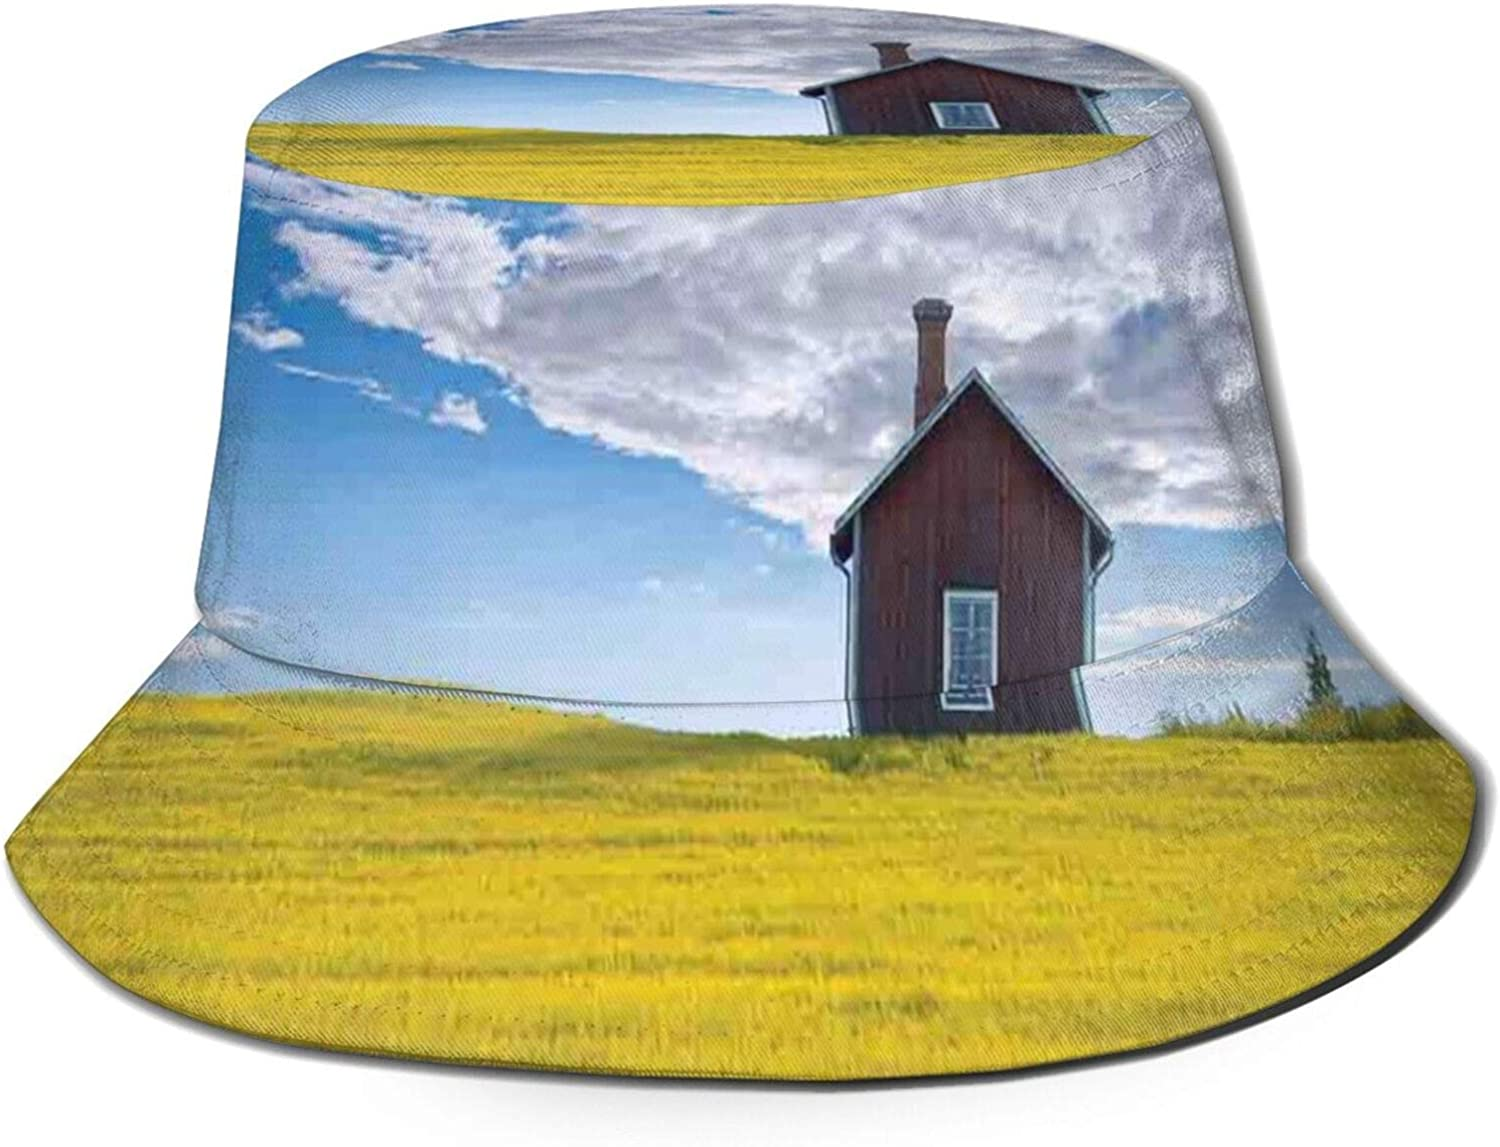 Cotton Packable Limited price sale Summer Travel Sun Beach Bucket Hat Discount mail order